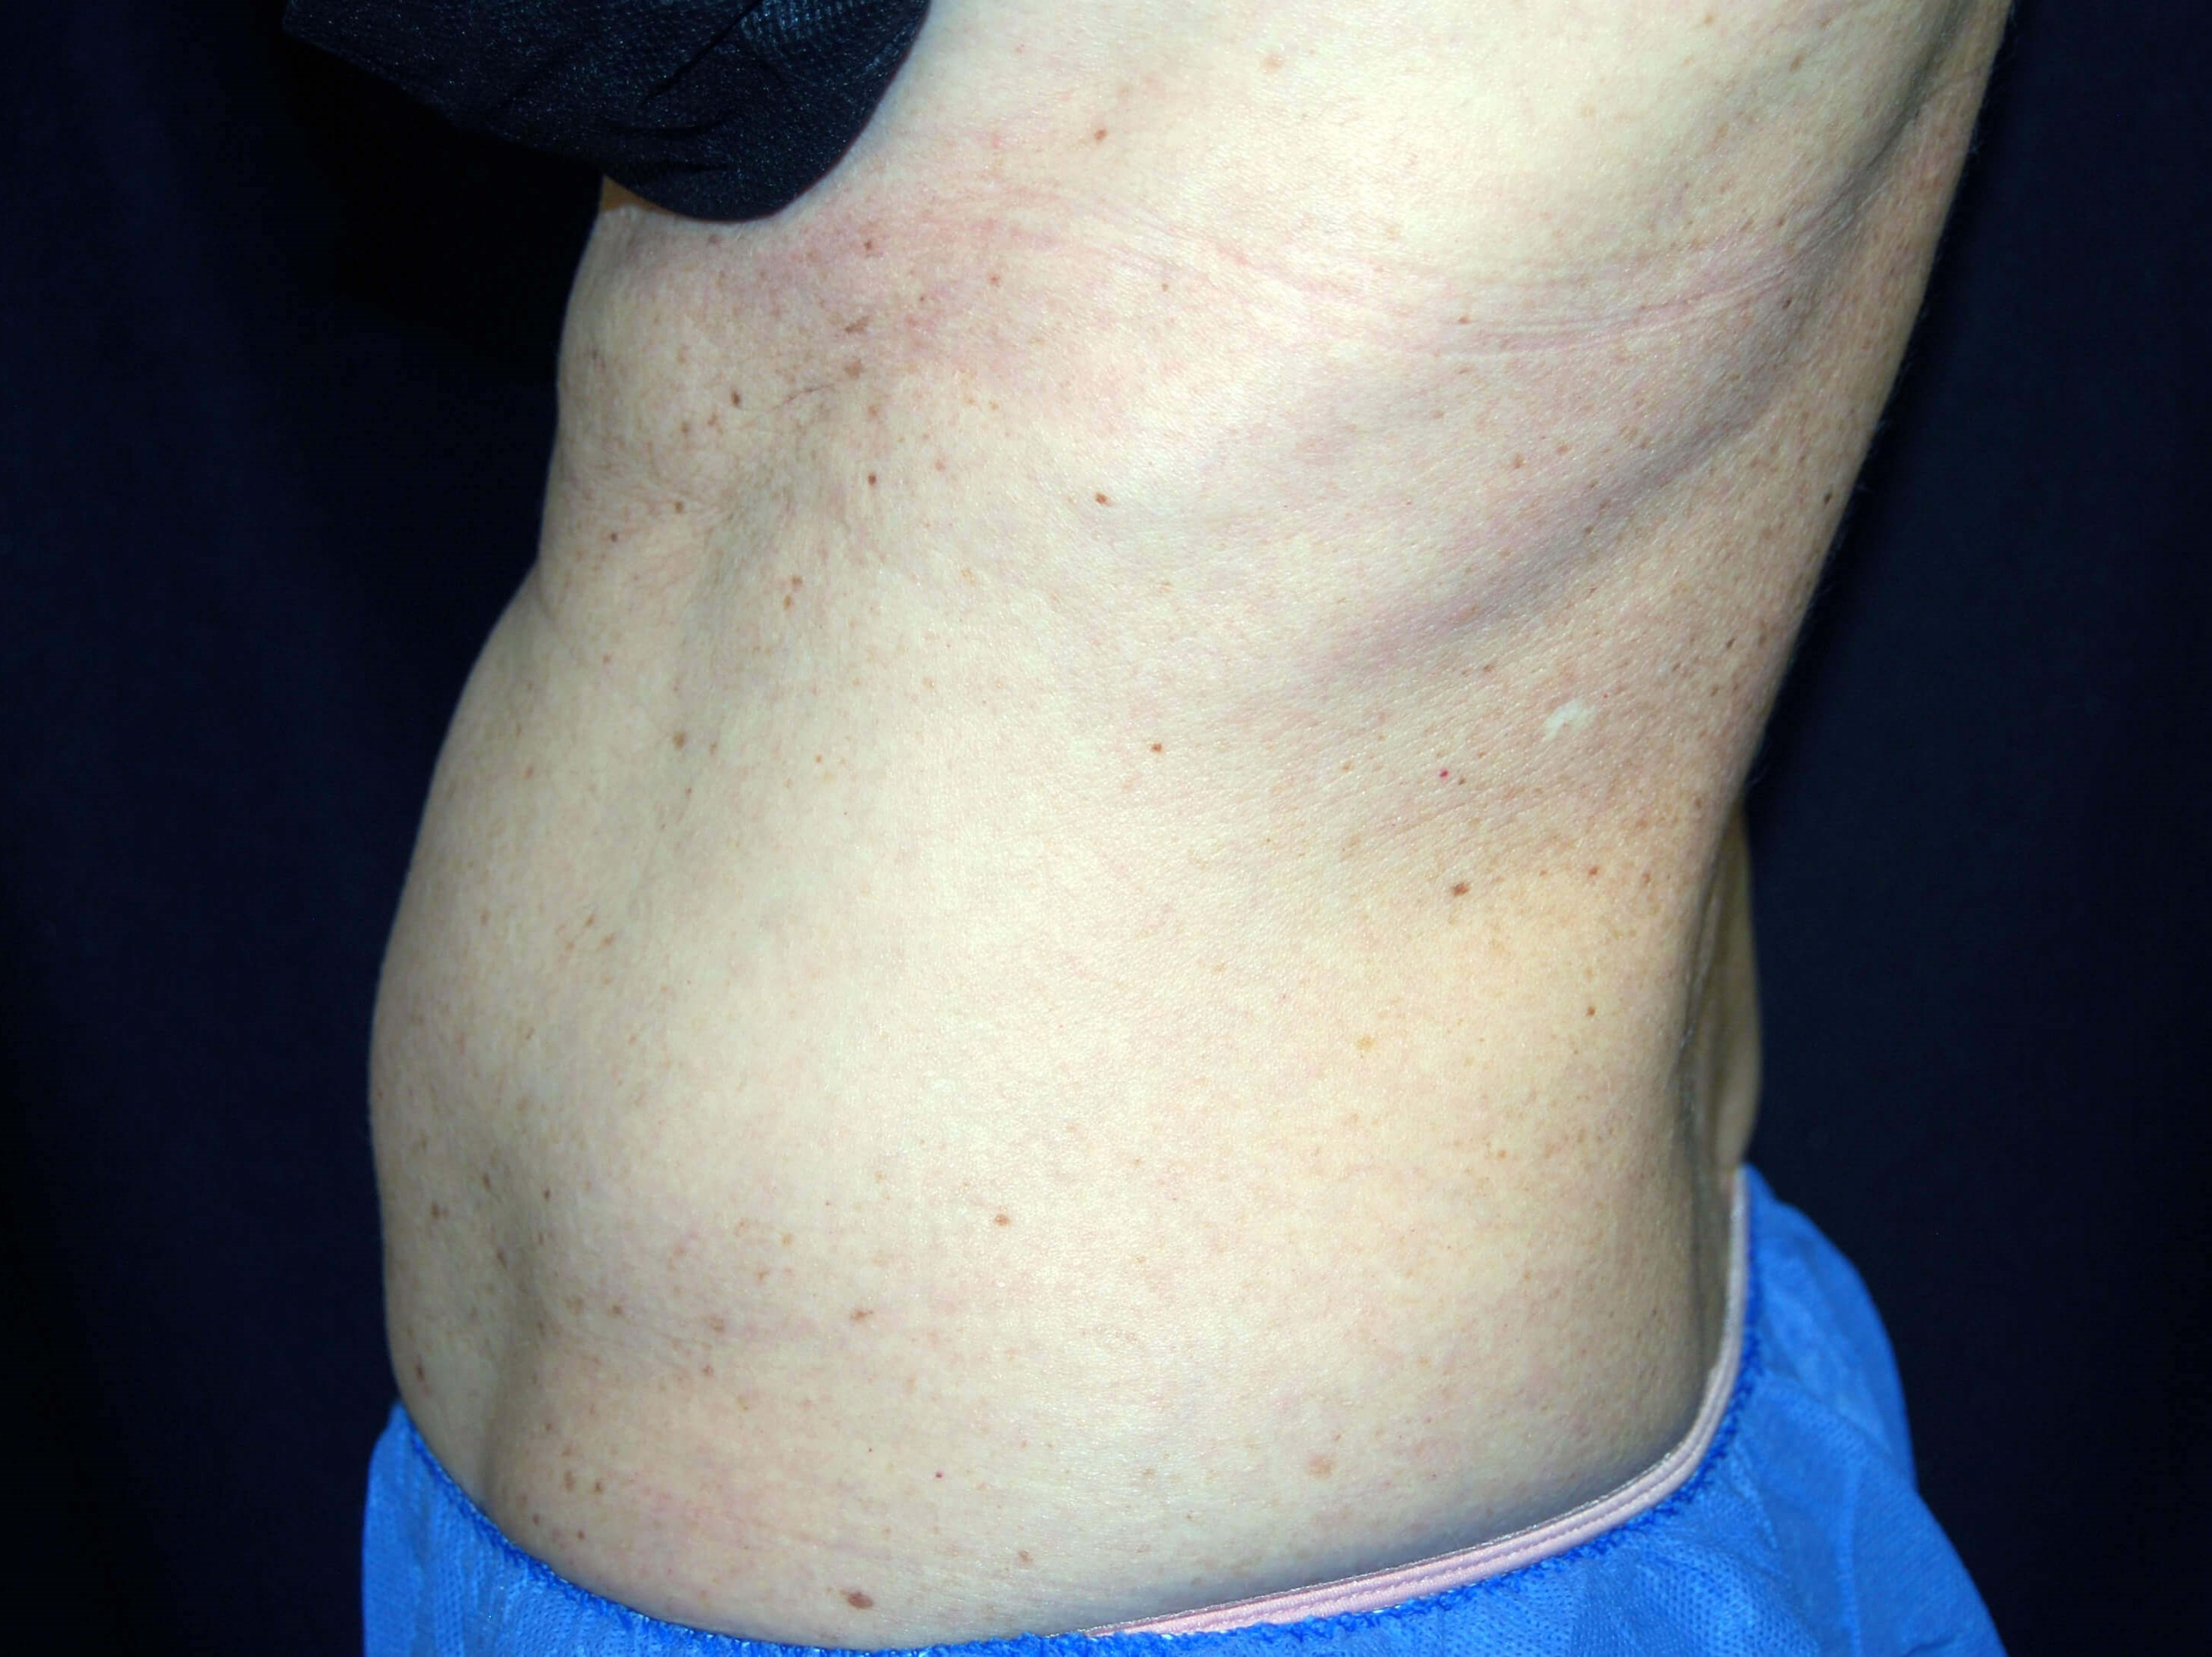 Left Side View After CoolSculpting